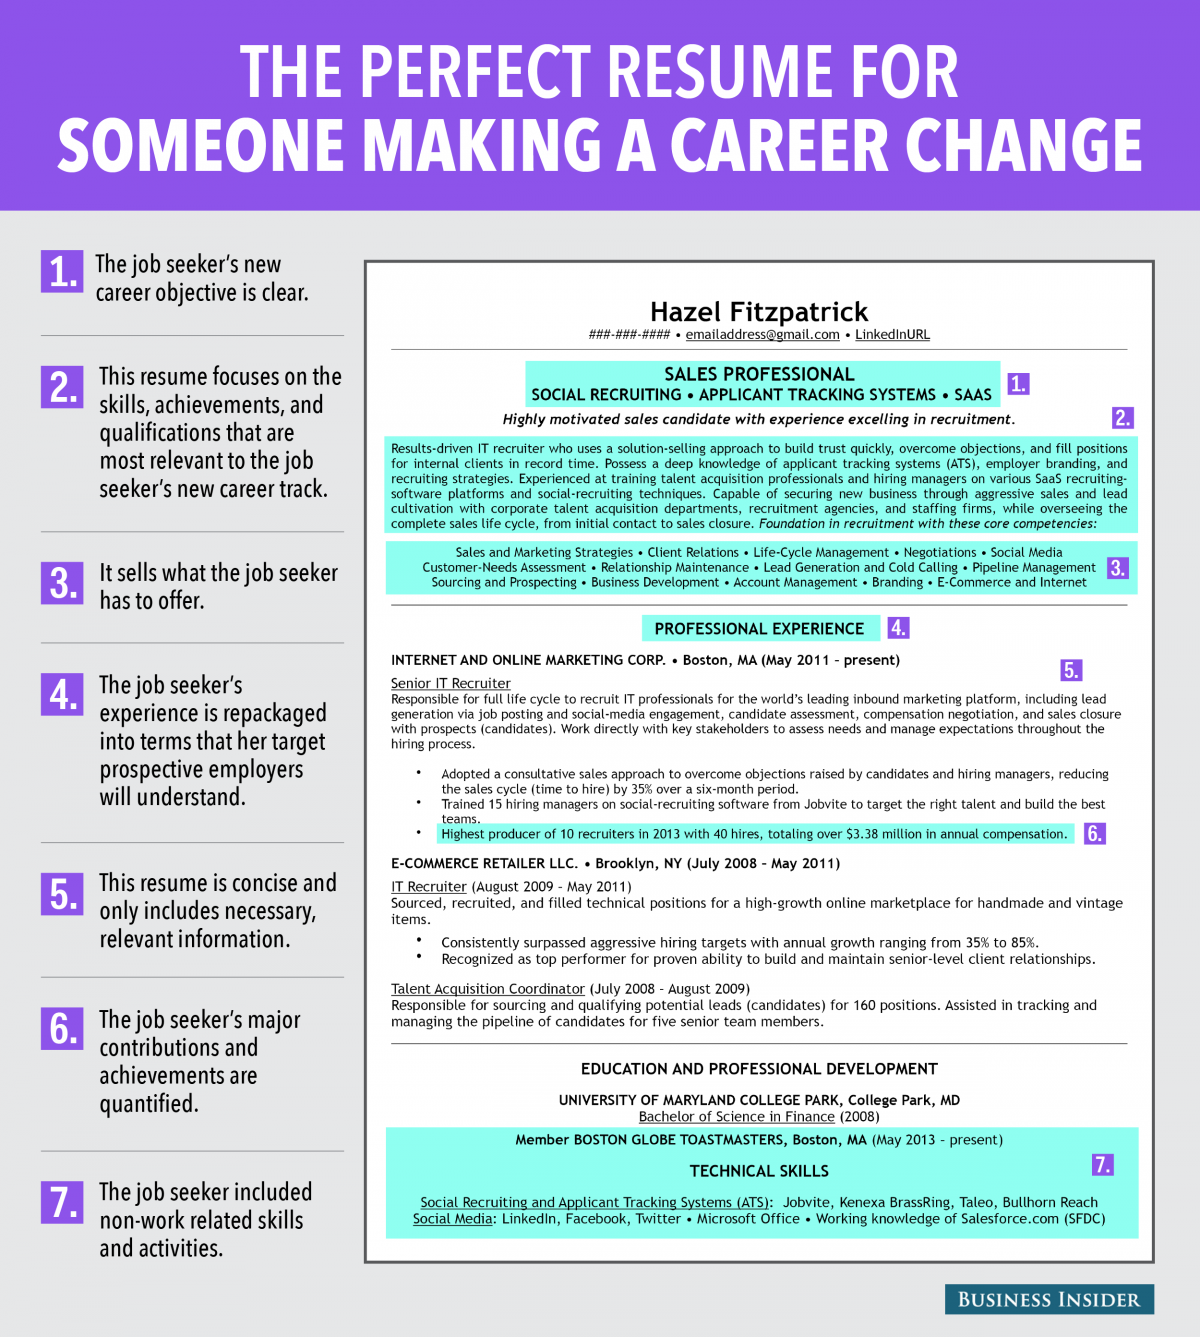 Resume Sample Resume Job Transition 8 things you should always include on your career change your